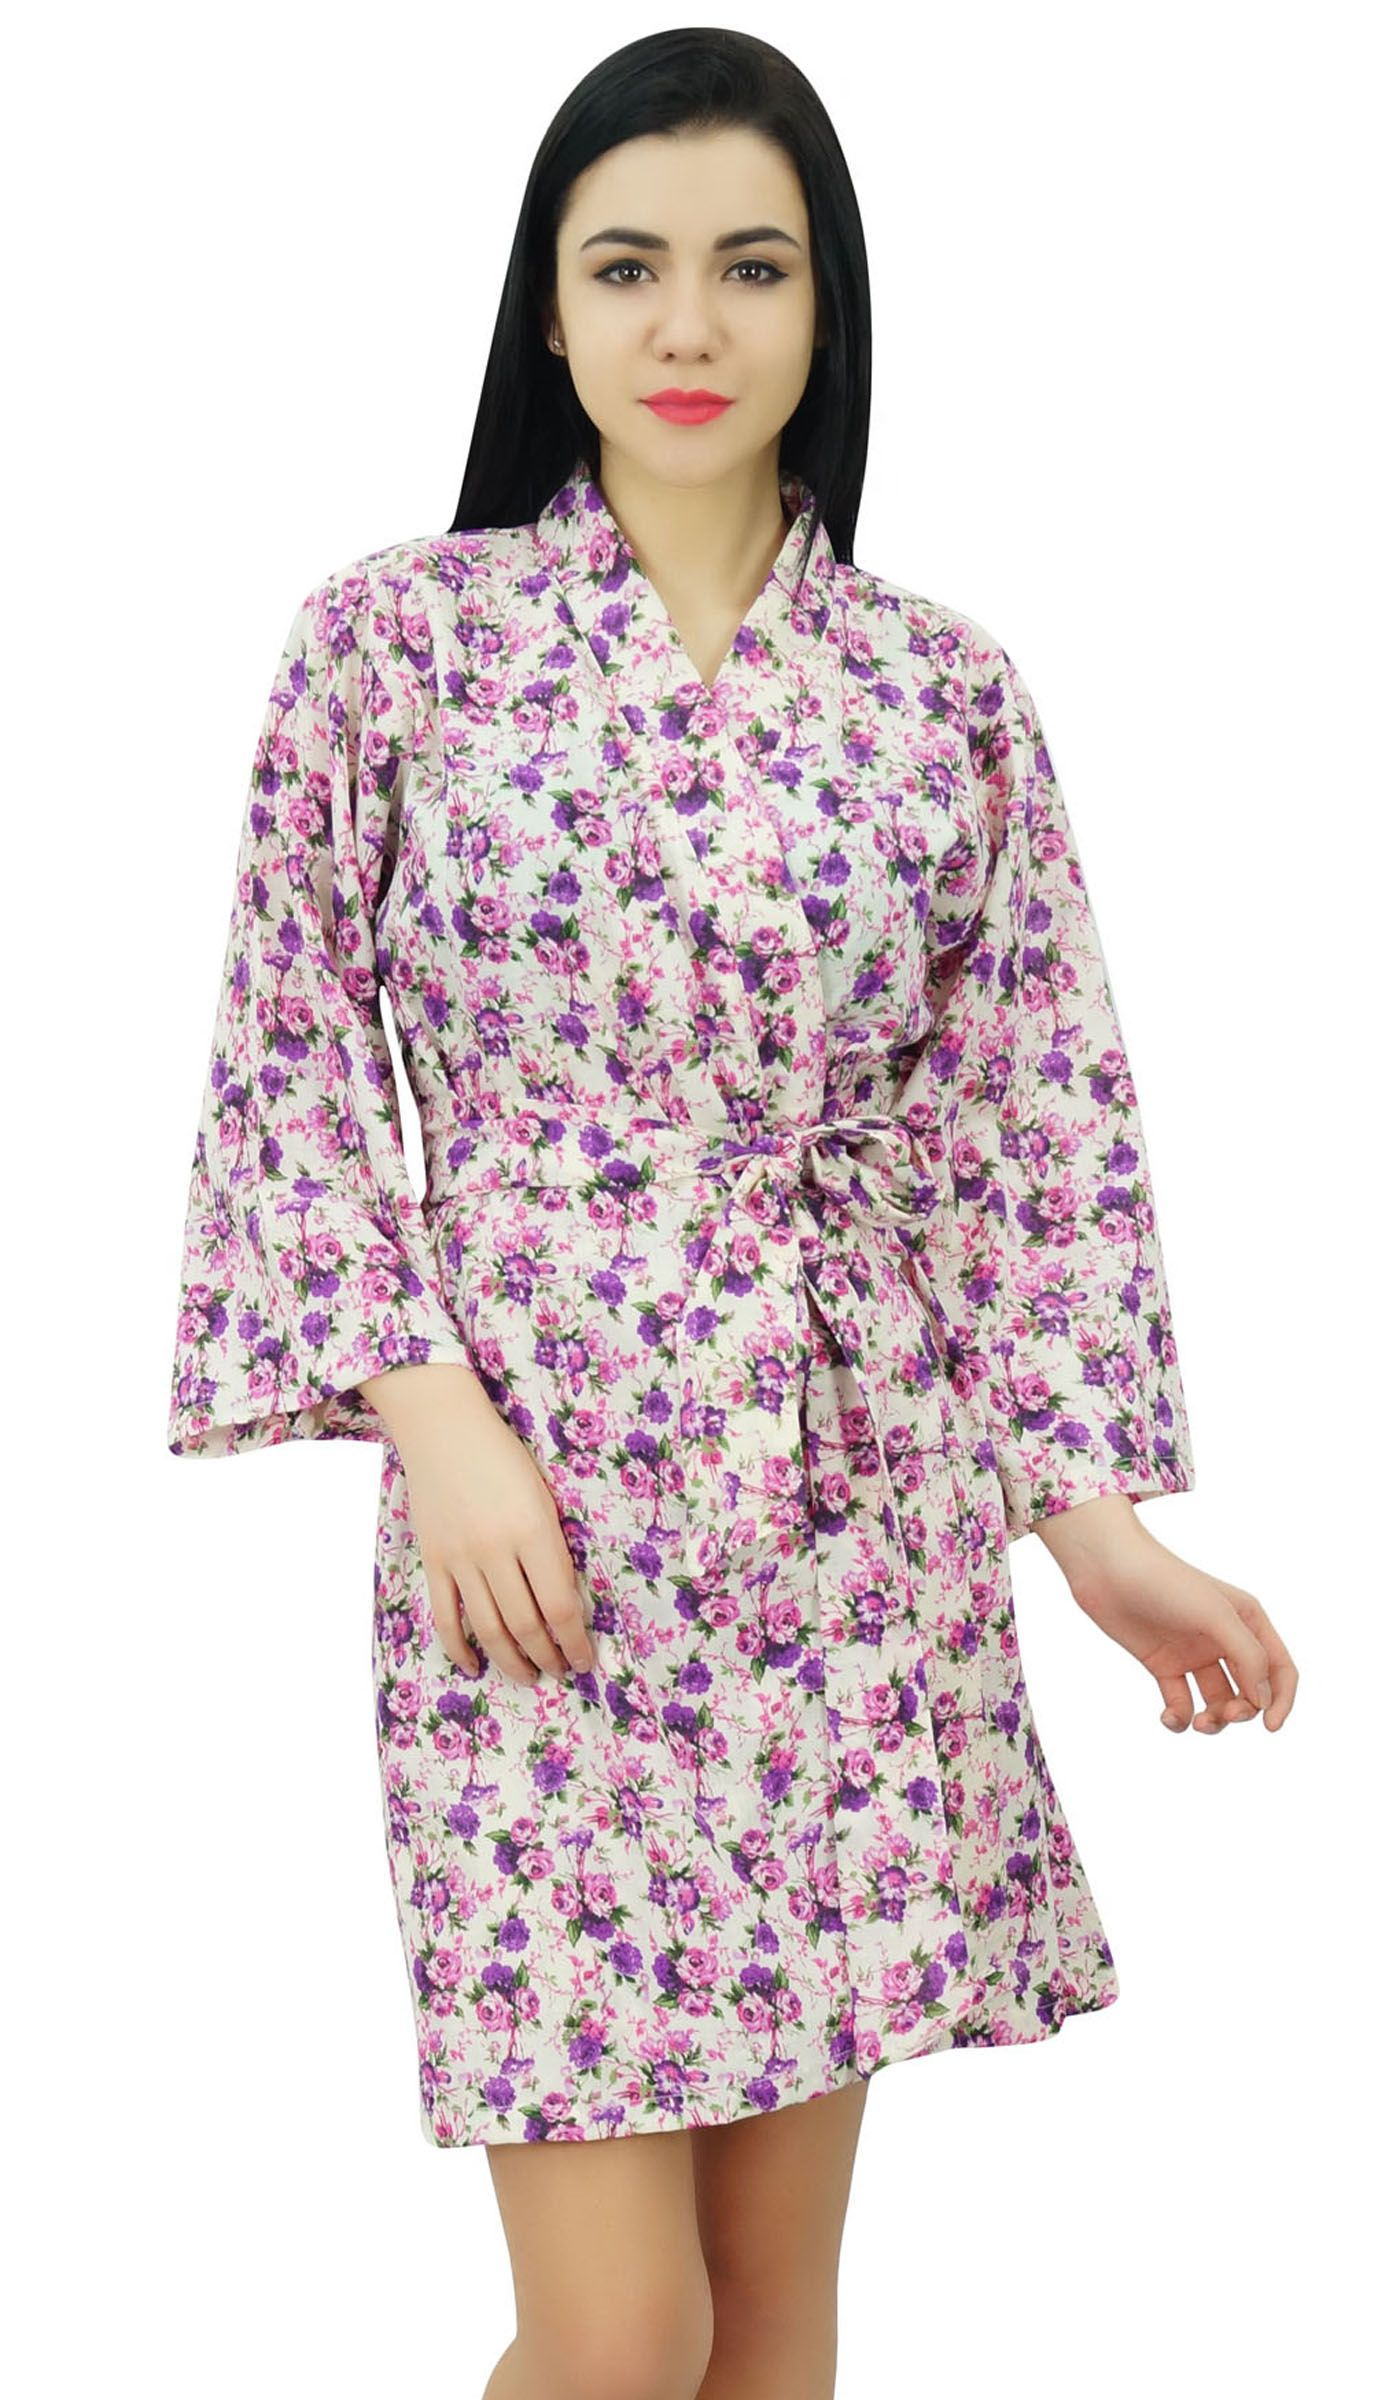 bb755e988b Bimba Womens Short Cotton Floral Robe Bride Getting Ready Bridesmaid Gift  Purple Cotton Floral